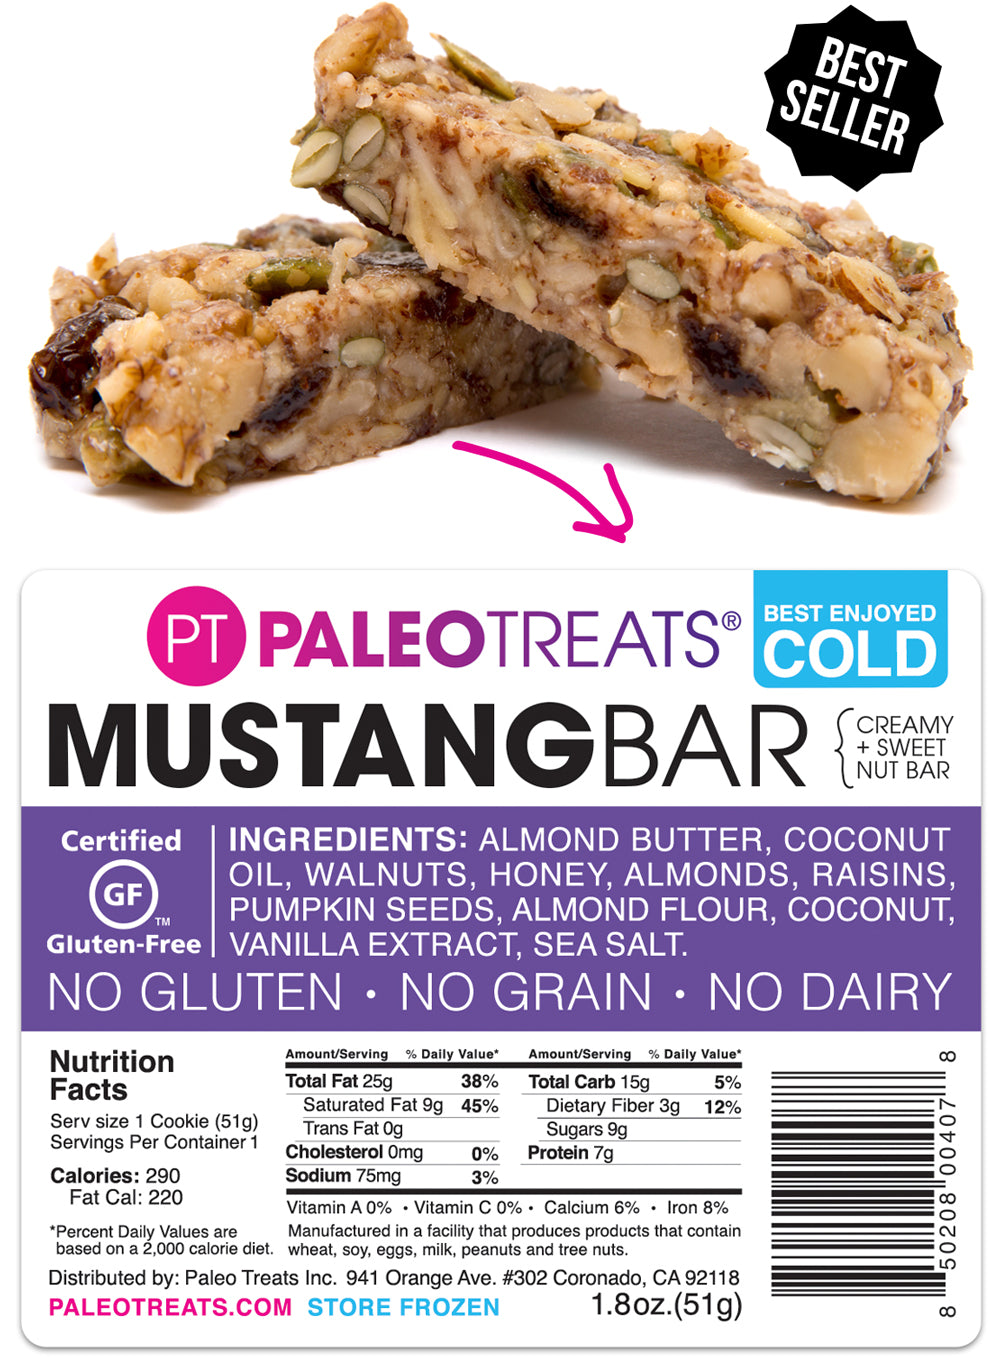 The Mustang Bar, a paleo oatmeal raisin cookie with a granola texture